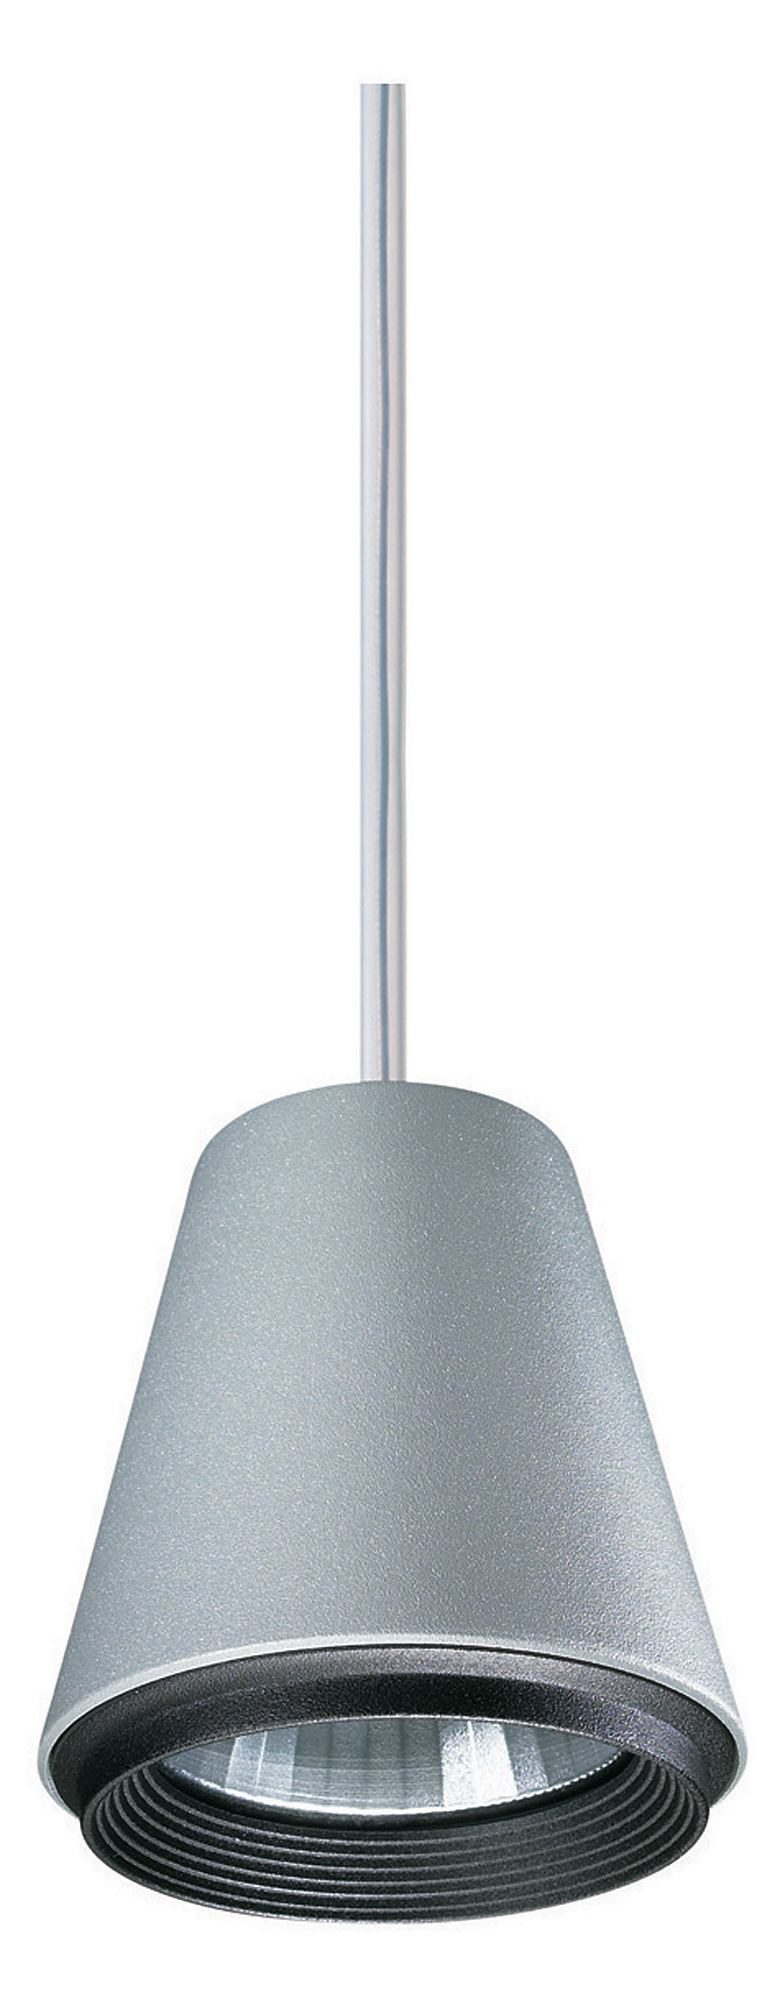 UnicOne Campana MPK561 C dimmable T70W/830 EB WH